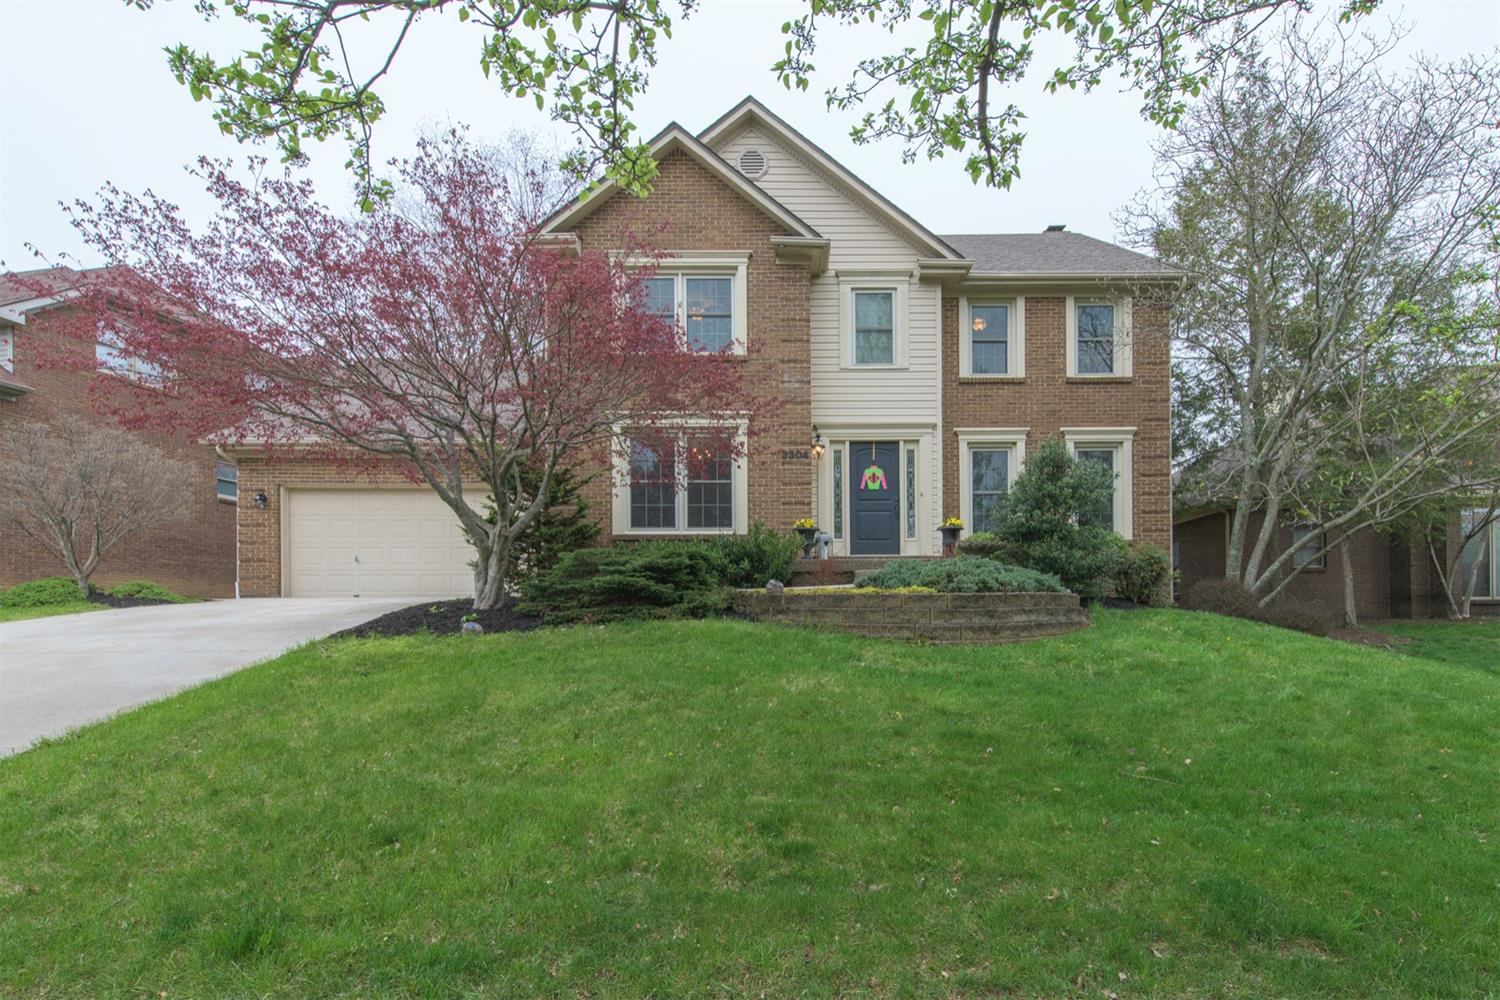 3304 Brighton Place Dr, Lexington, KY 40509